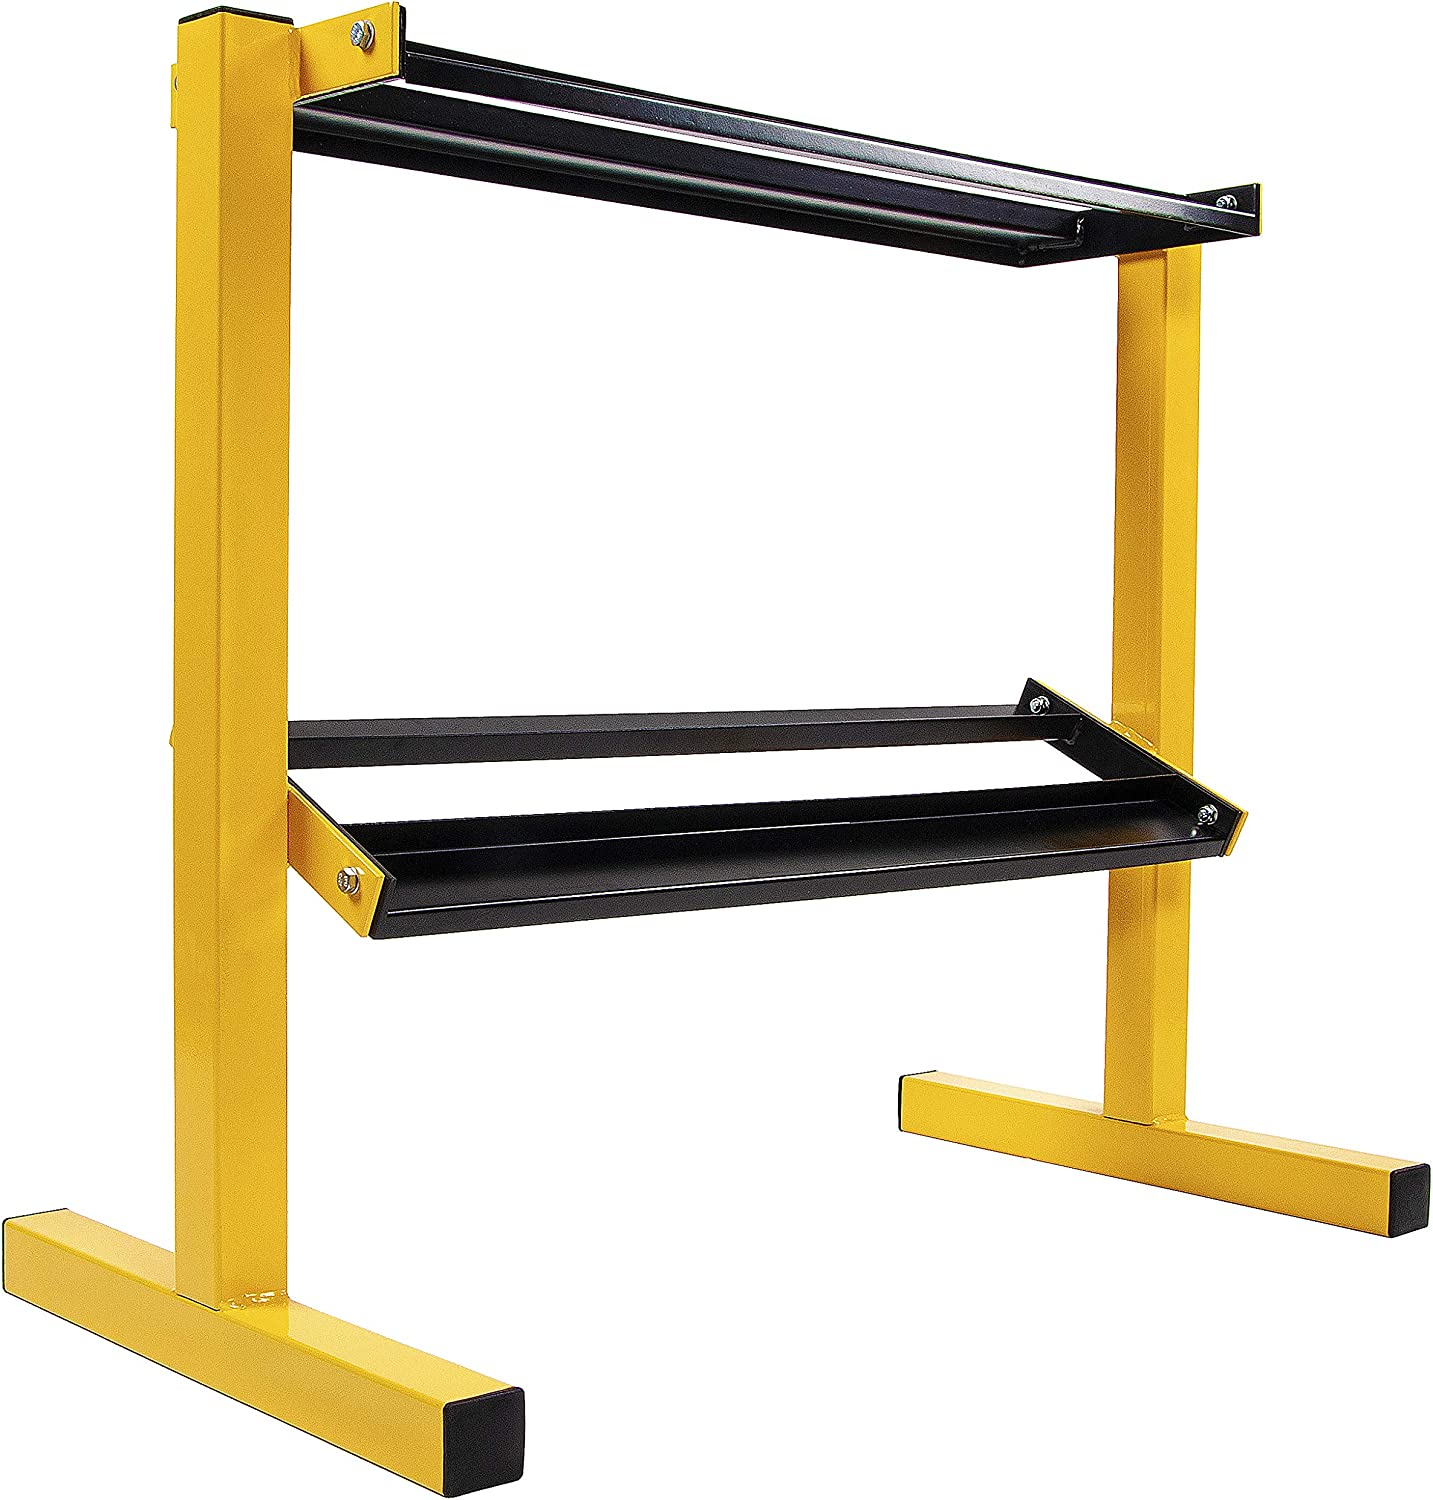 BalanceFrom 2-Tier Easy-Grab Dumbbell Rack Multilevel Weight Storage Organizer for Home Gym, 600-Pound Capacity, Yellow/Black